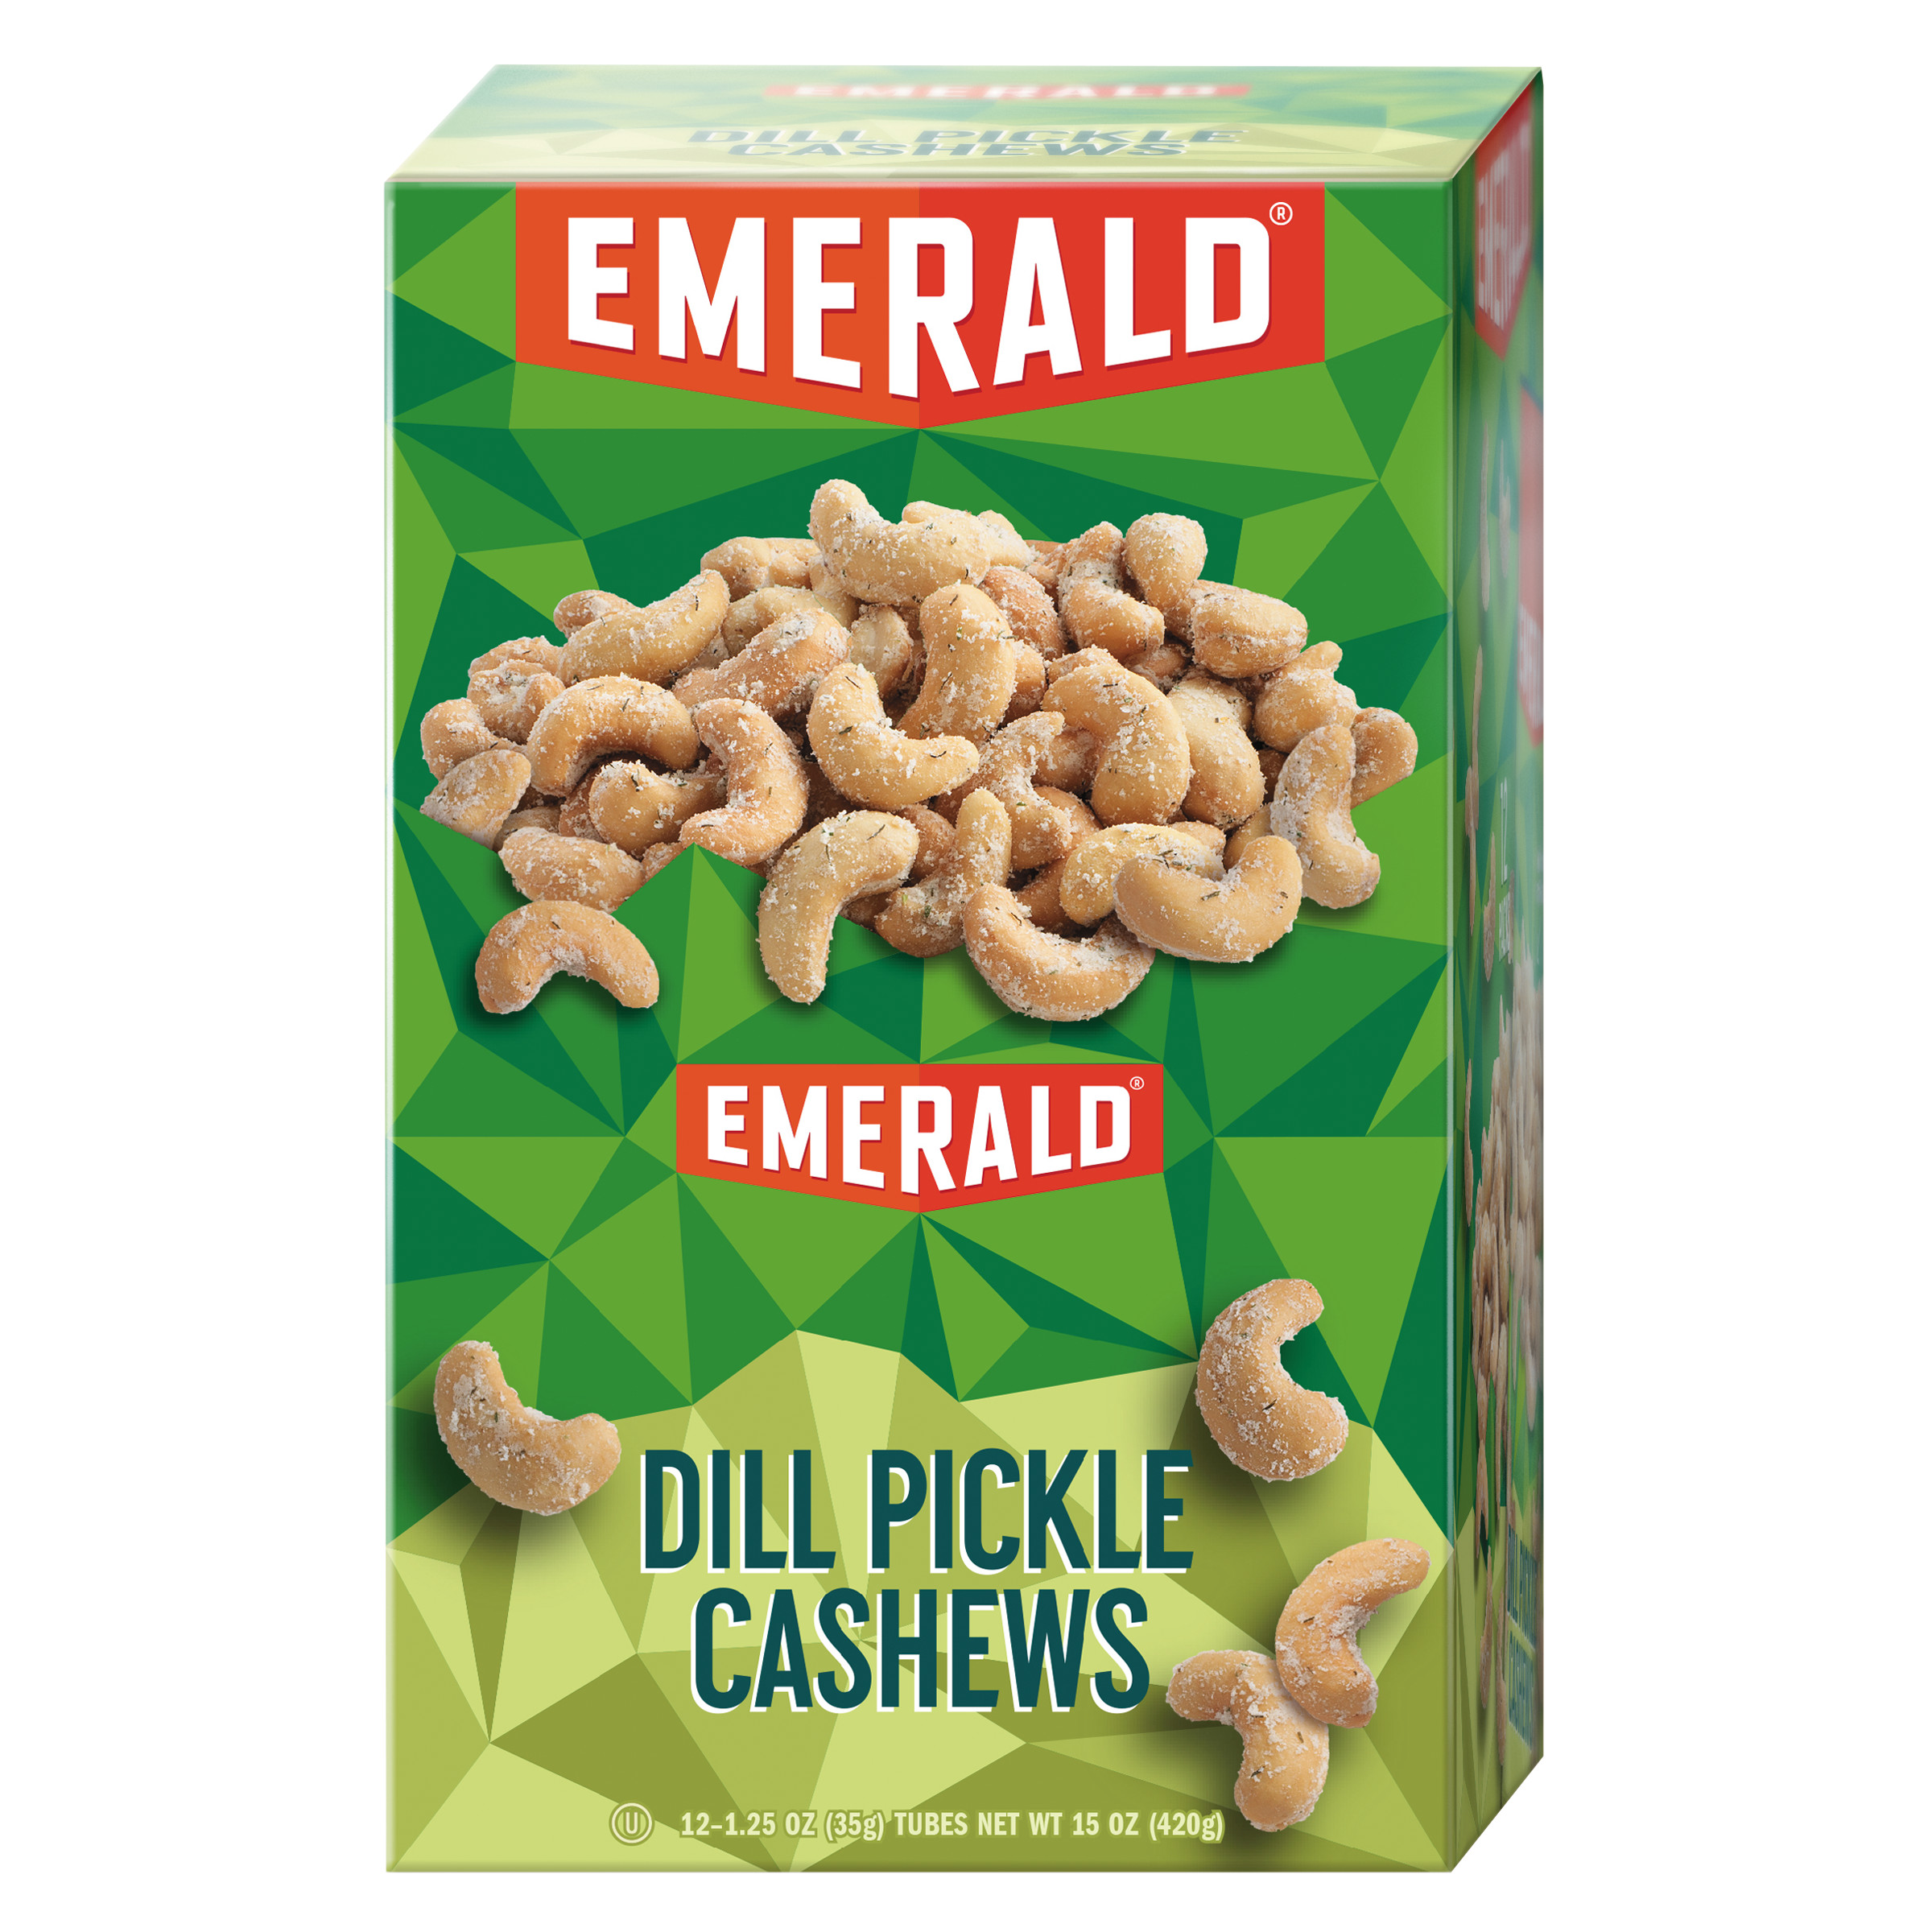 Emerald Snack Nuts, Dill Pickle Cashews, 1.25 oz Tube, 12 Box by Diamond Foods